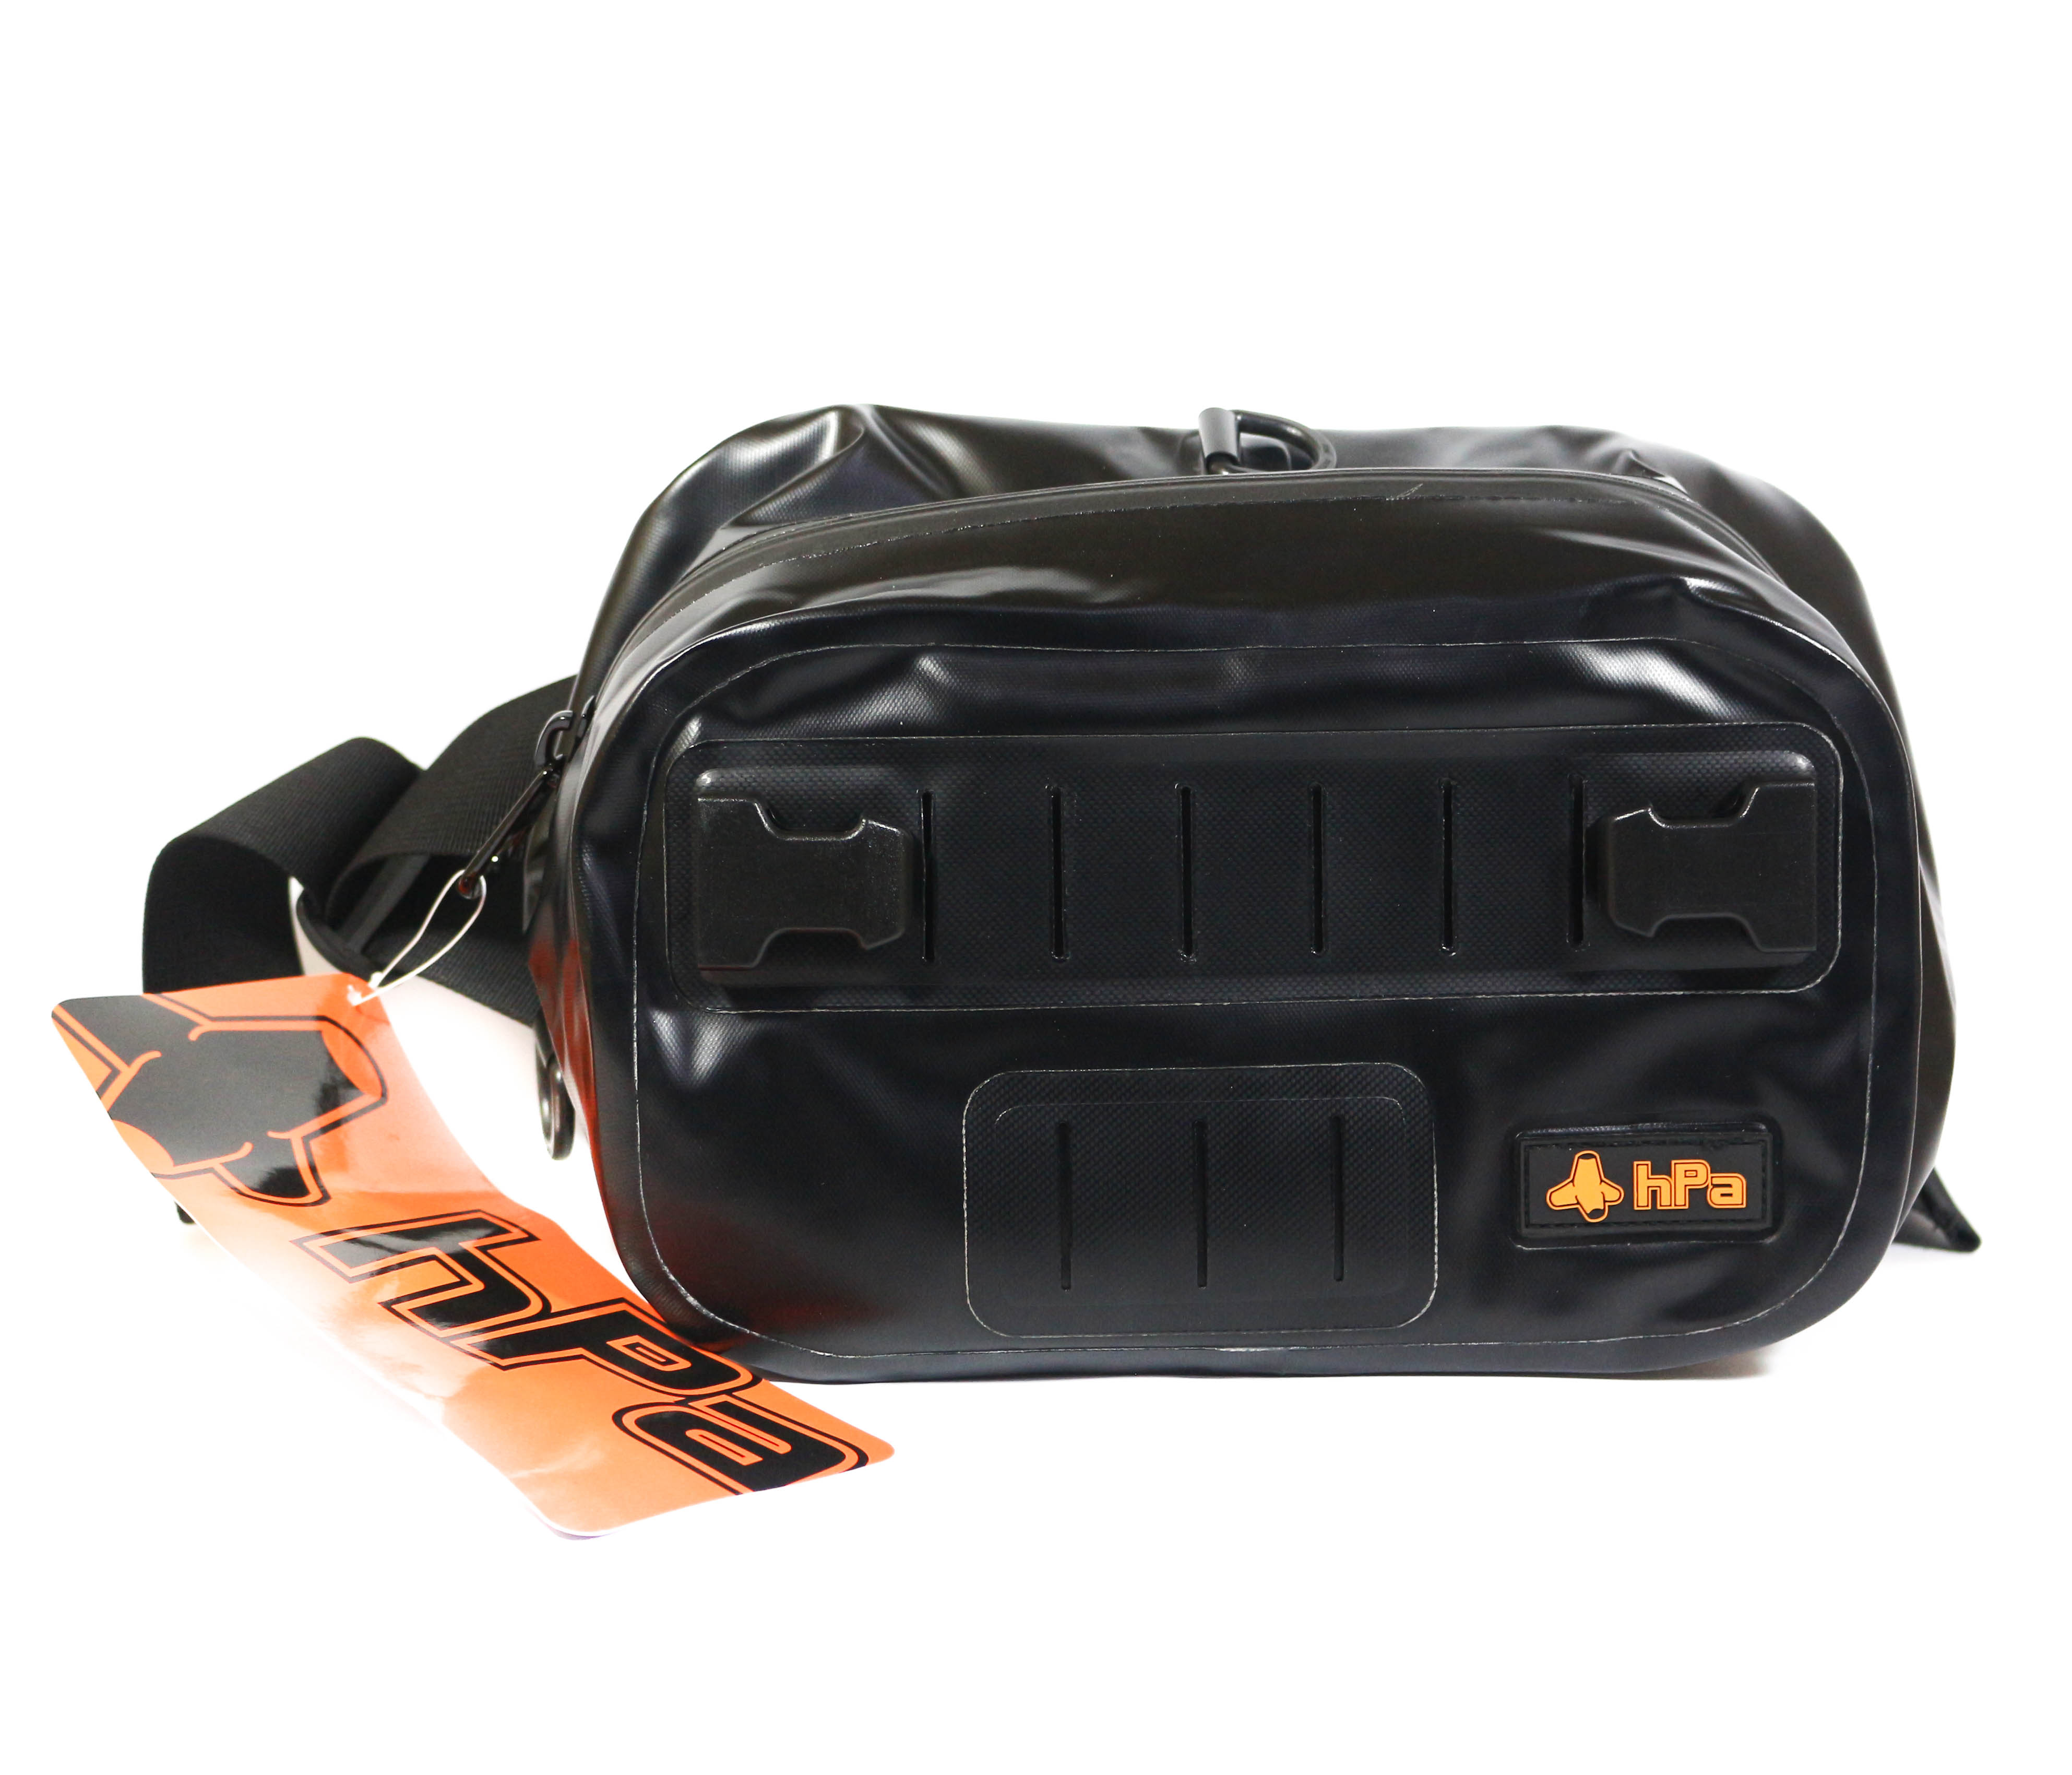 HPA Infladry 6 Waistpack 27 x 18 x 10cm 6 litres Black (0061)